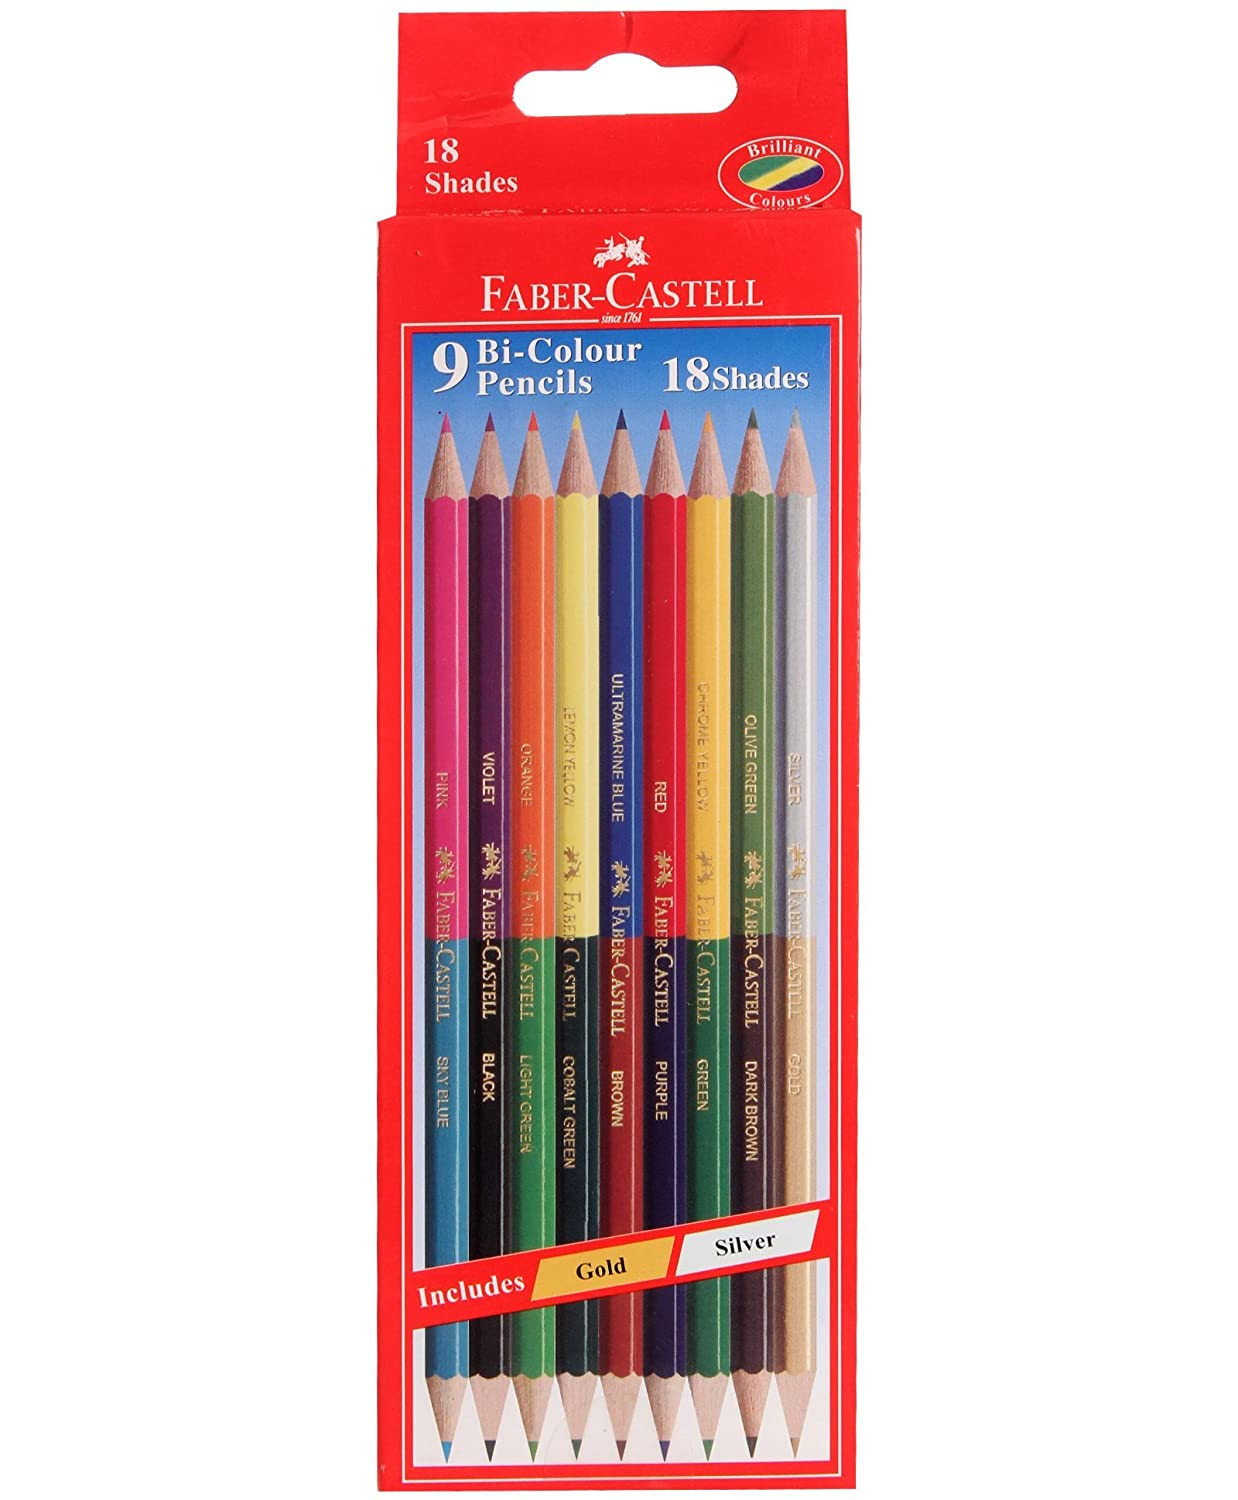 Amazon.com: Faber-castell Dual Sided Bi - Colour Pencils in ...